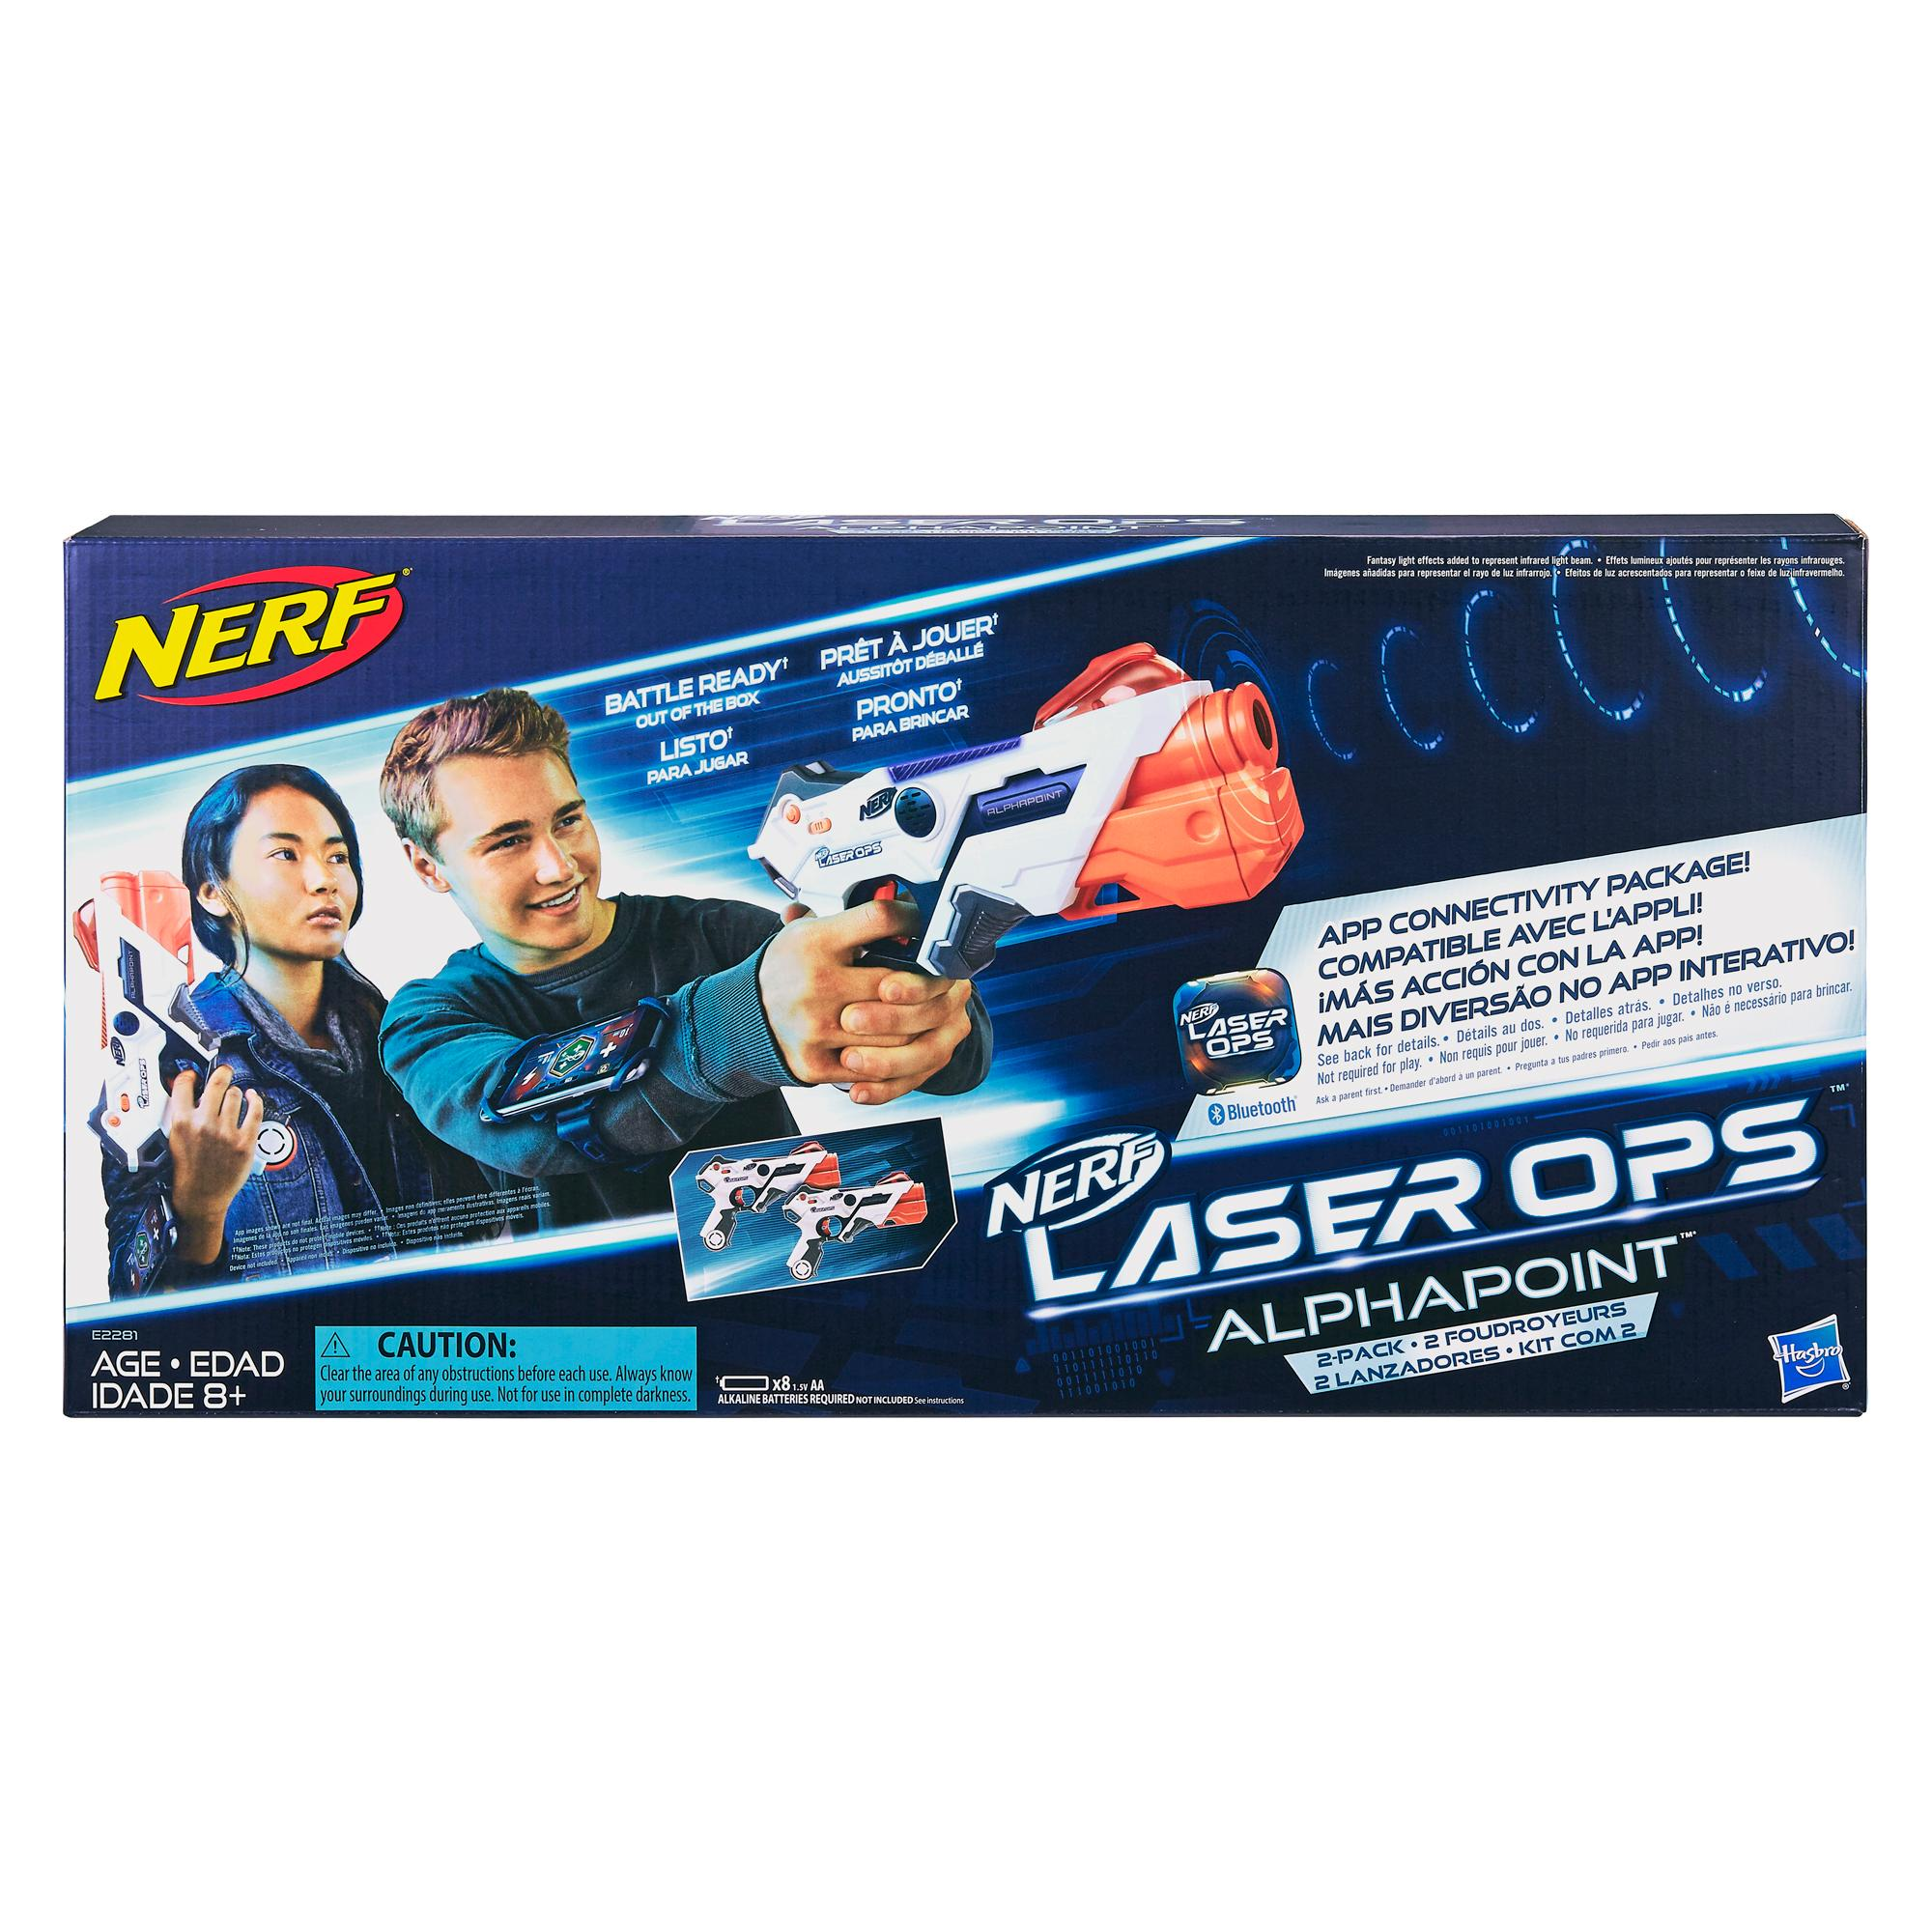 Nerf Laser Ops - 2 foudroyeurs AlphaPoint Pro